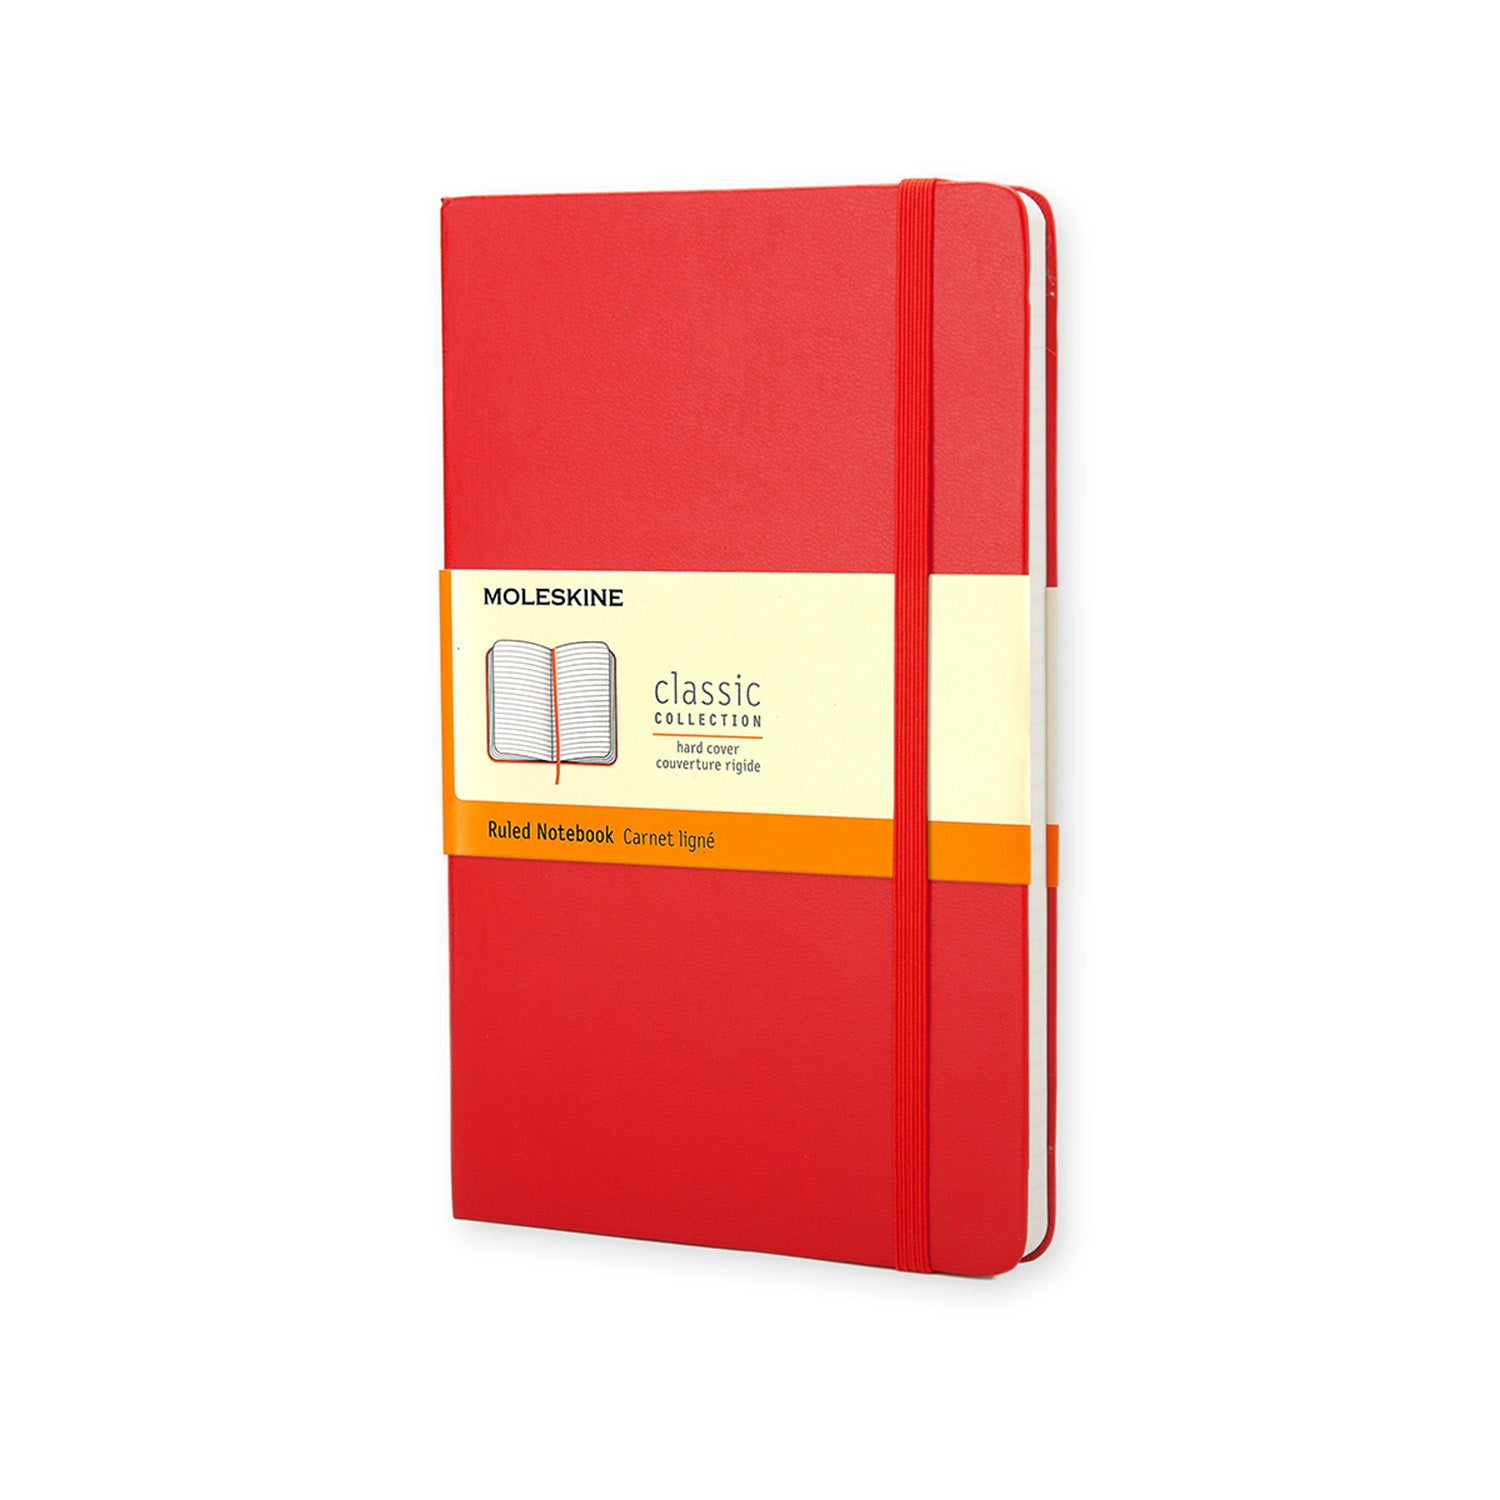 Moleskine Classic Hard Cover Notebook Pocket RULED Red